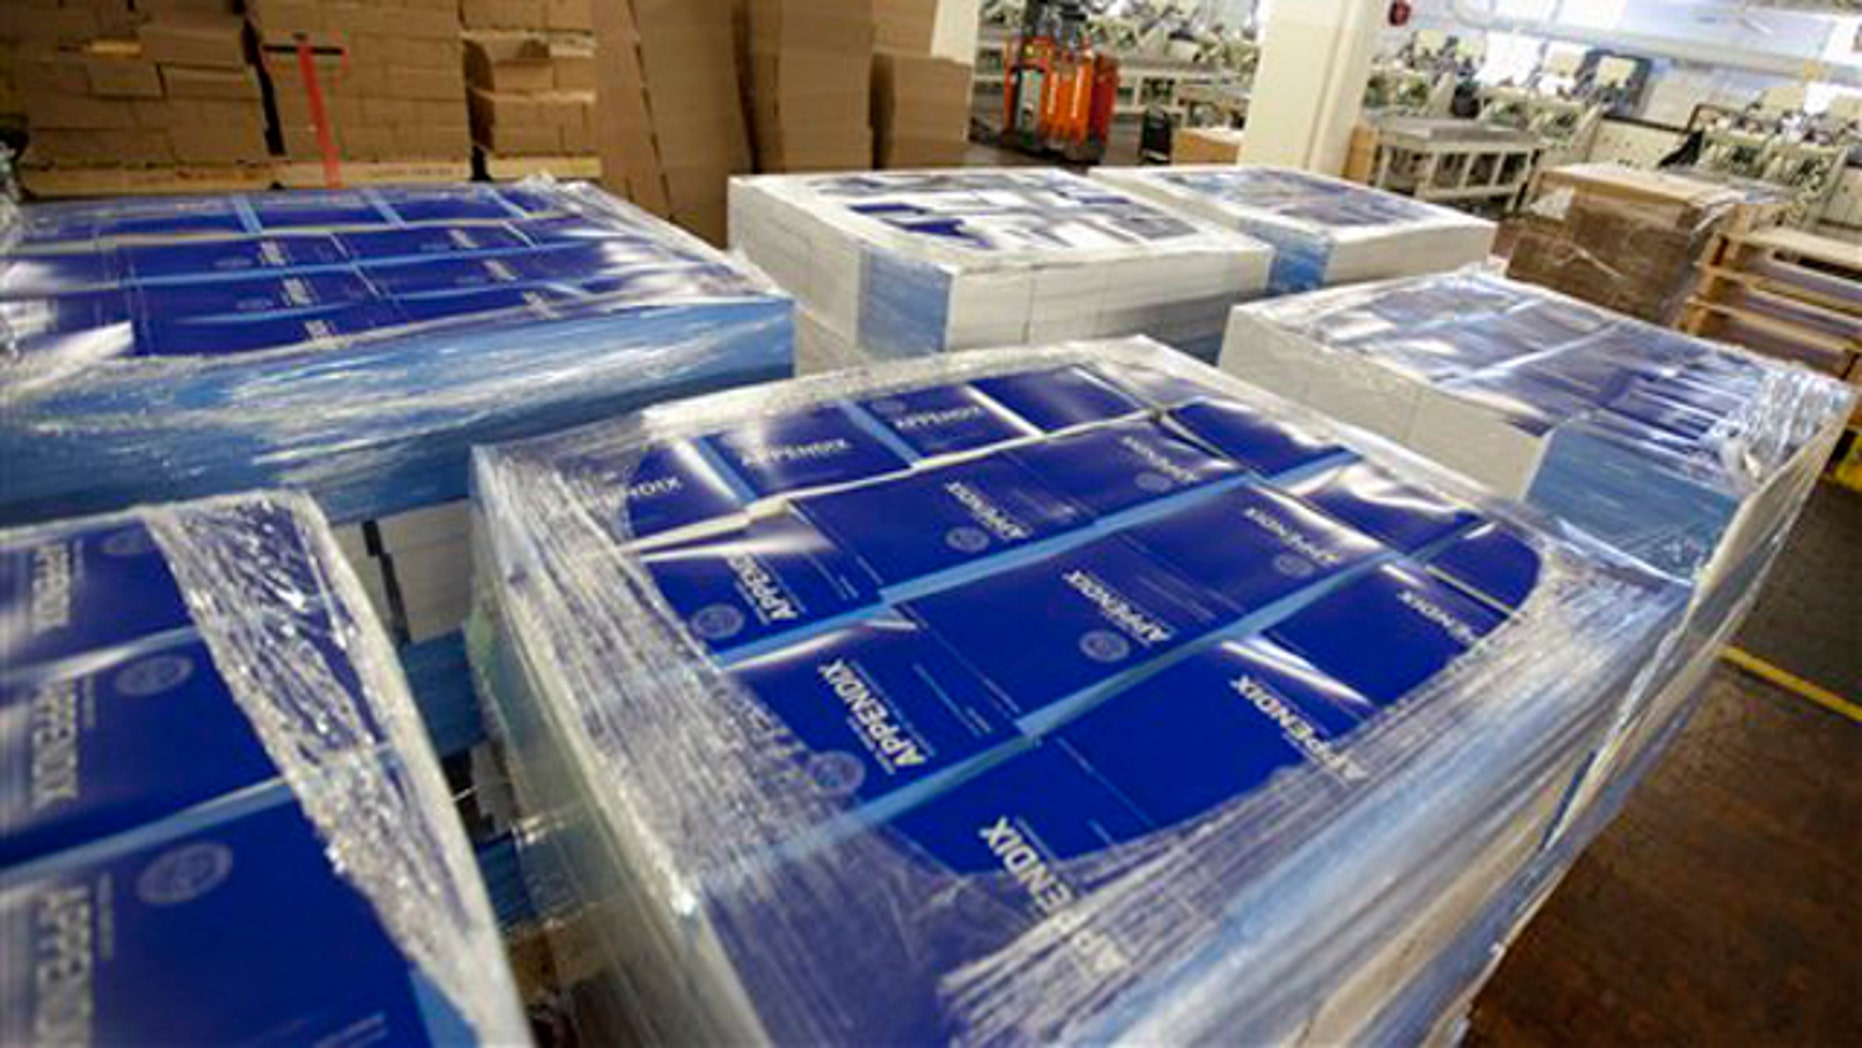 Feb. 9, 2012: Copies of of President Obama's fiscal 2013 federal budget are readied for shipment at the Government Printing Office (GPO) in Washington.